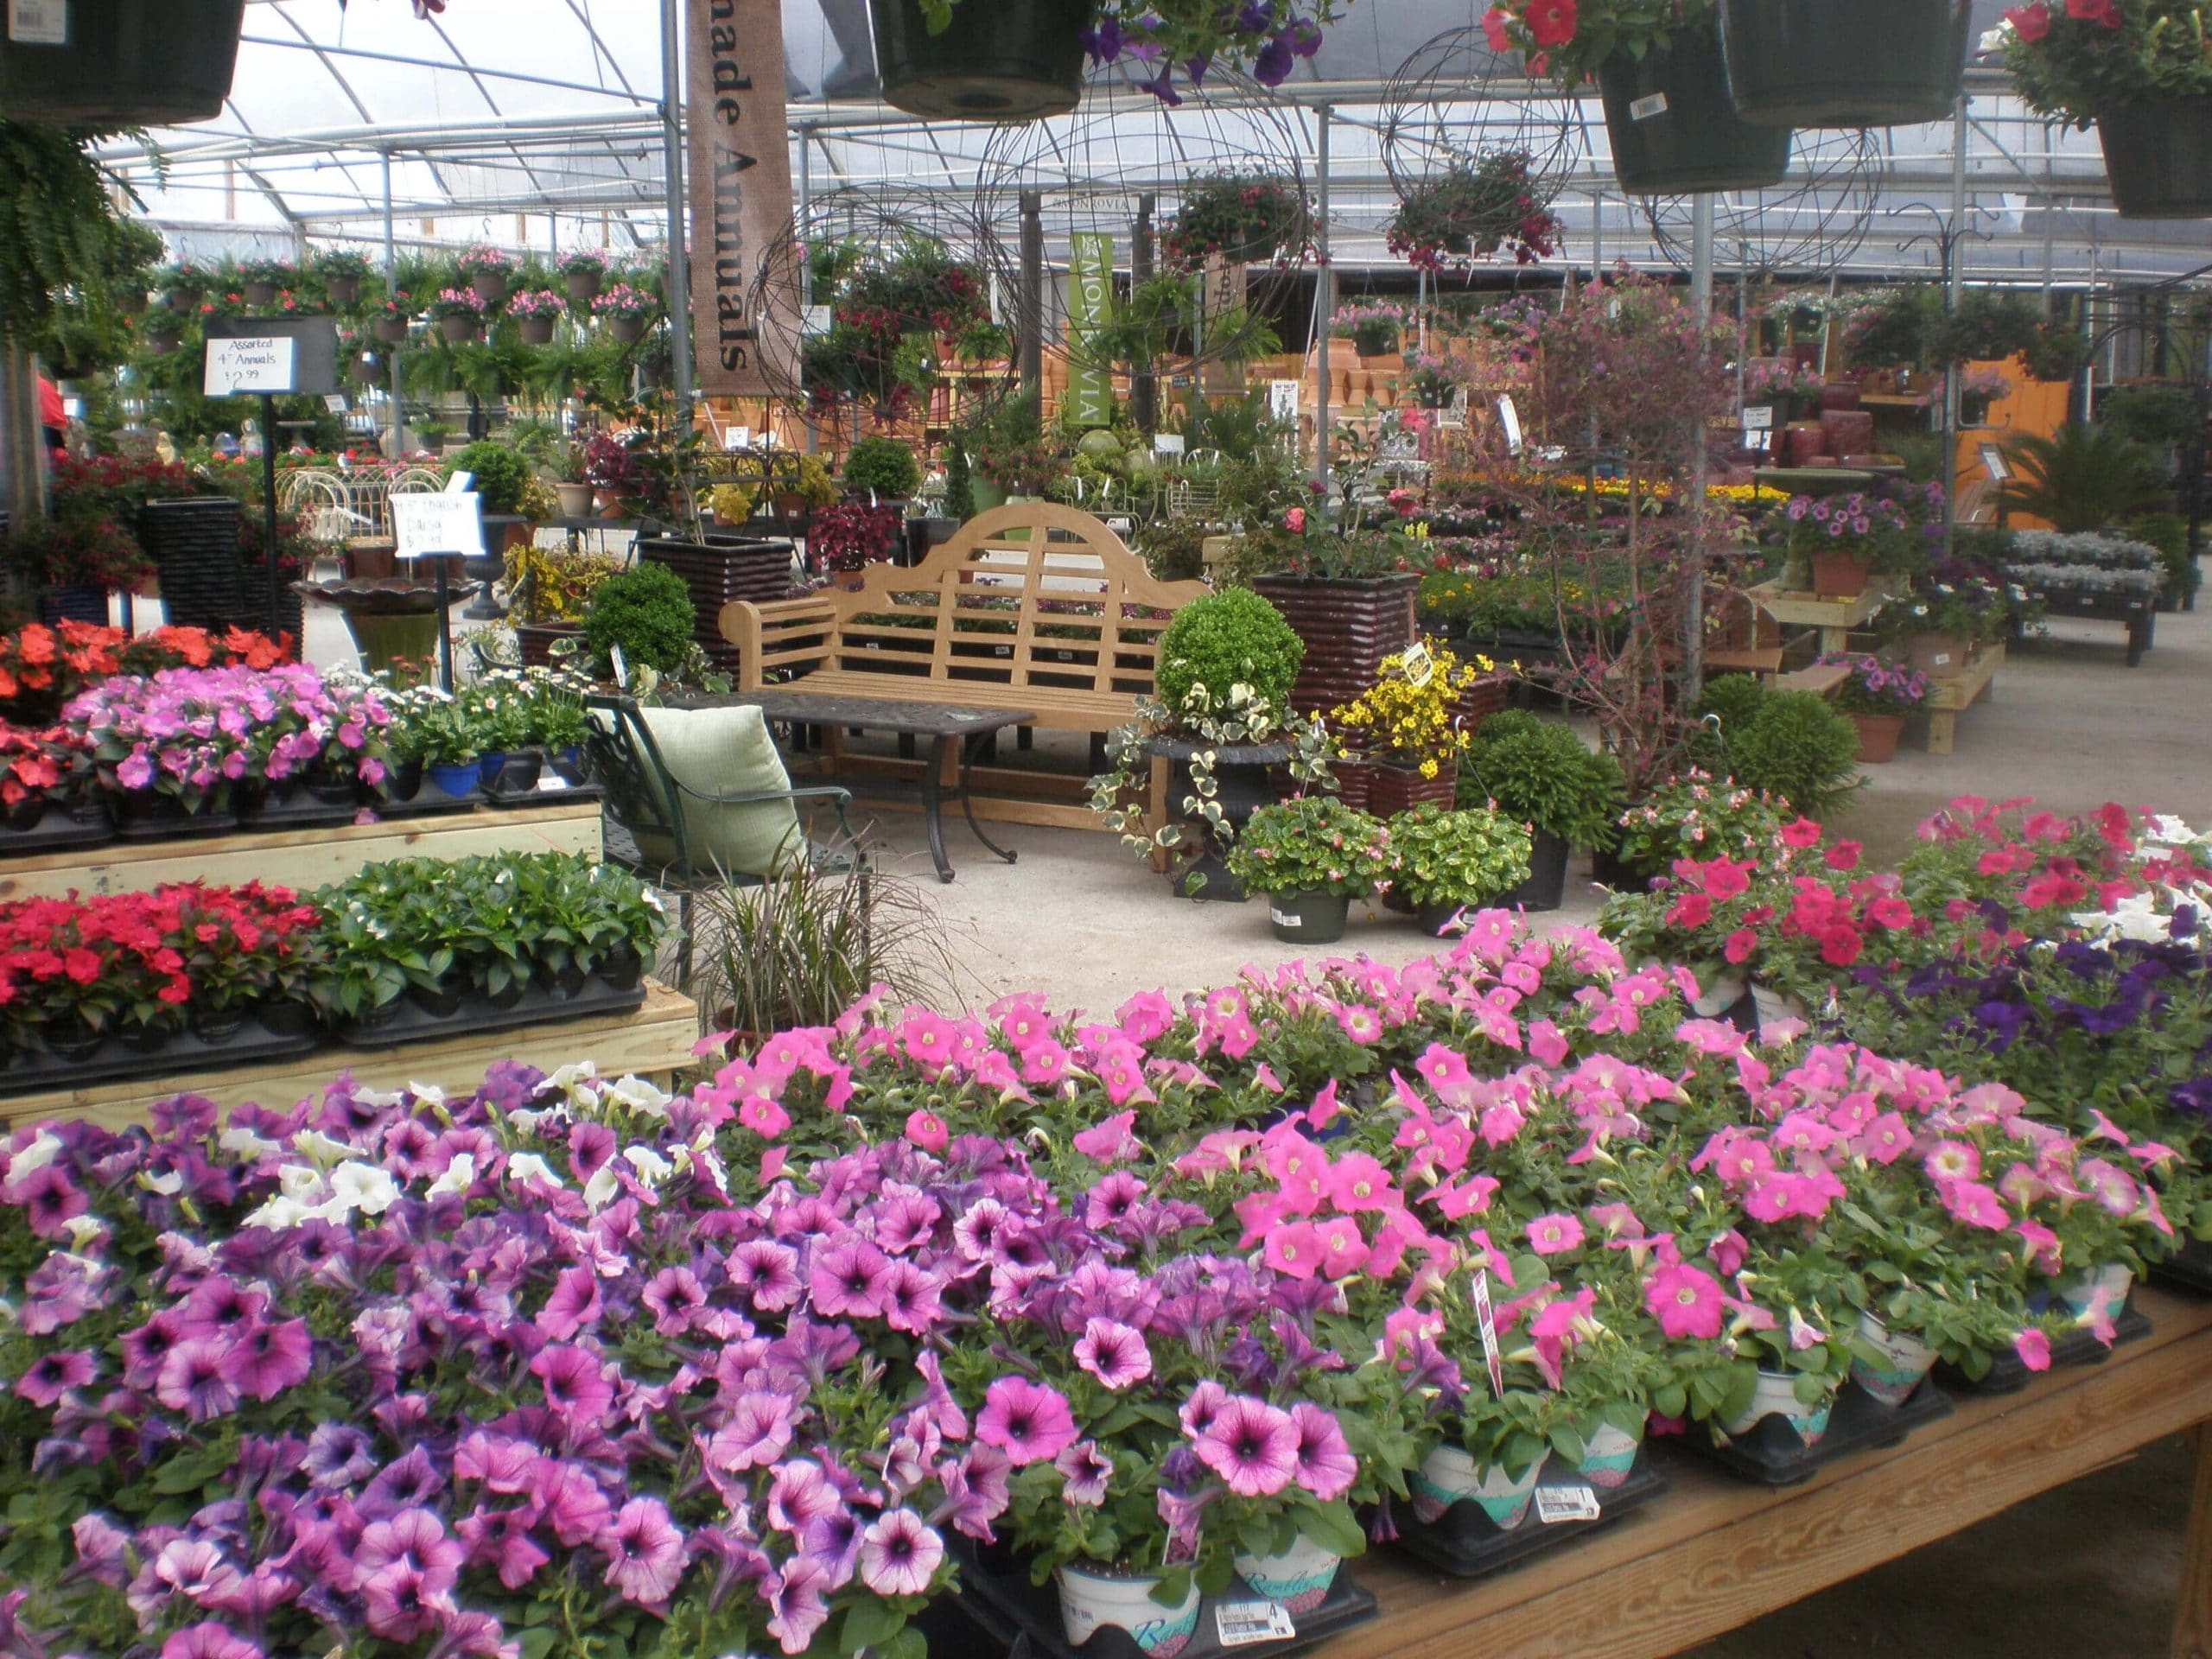 As We Wrap Up A Chilly February, Our Garden Center Is Filling Up With A  Plethora Of Spring Blooms. If You Have Started Thinking About Your Garden,  ...